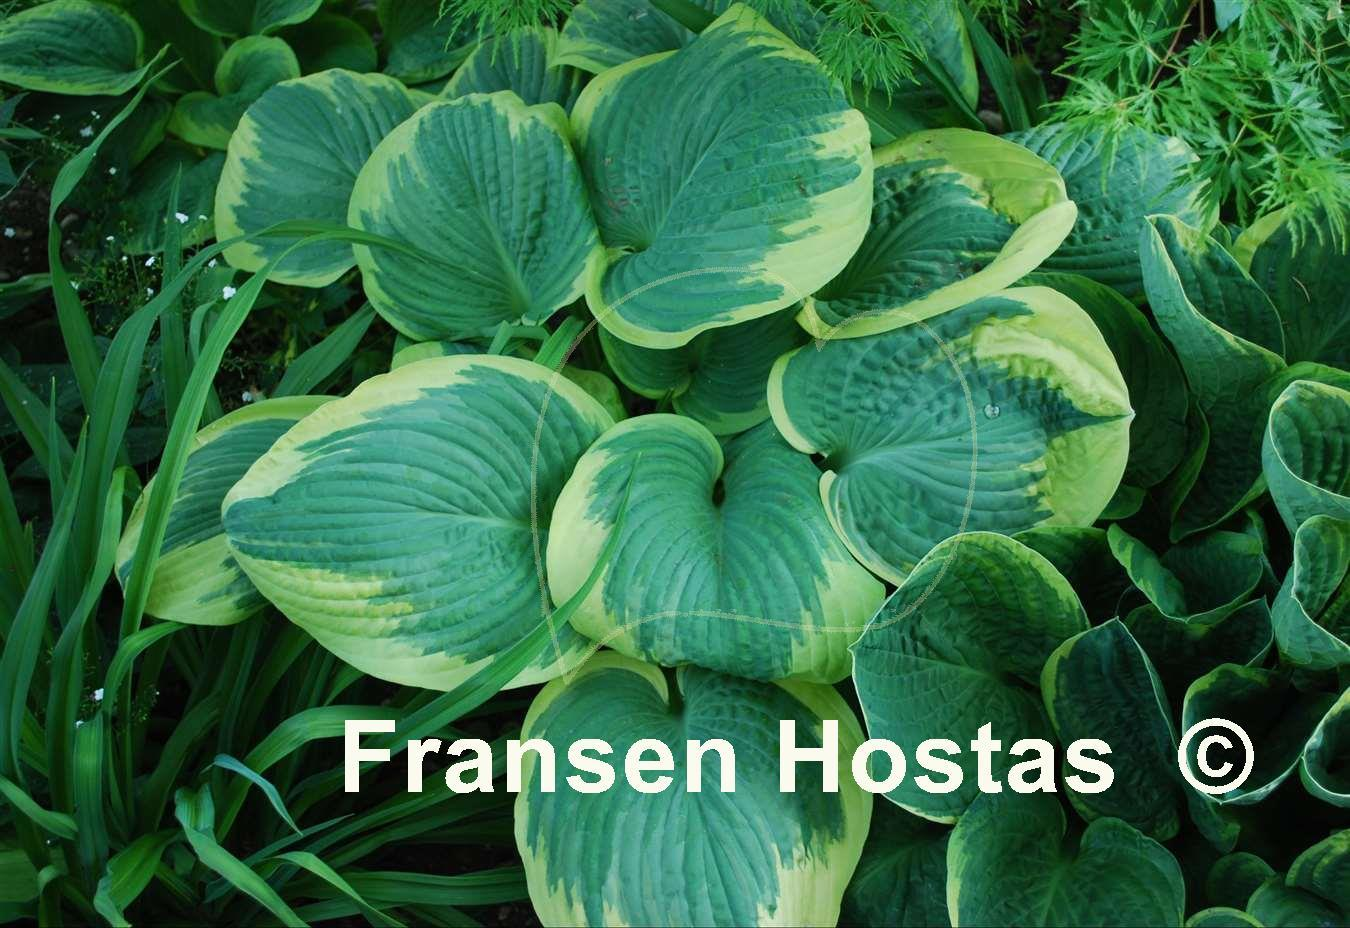 hosta robert frost funkie fransen hostas. Black Bedroom Furniture Sets. Home Design Ideas